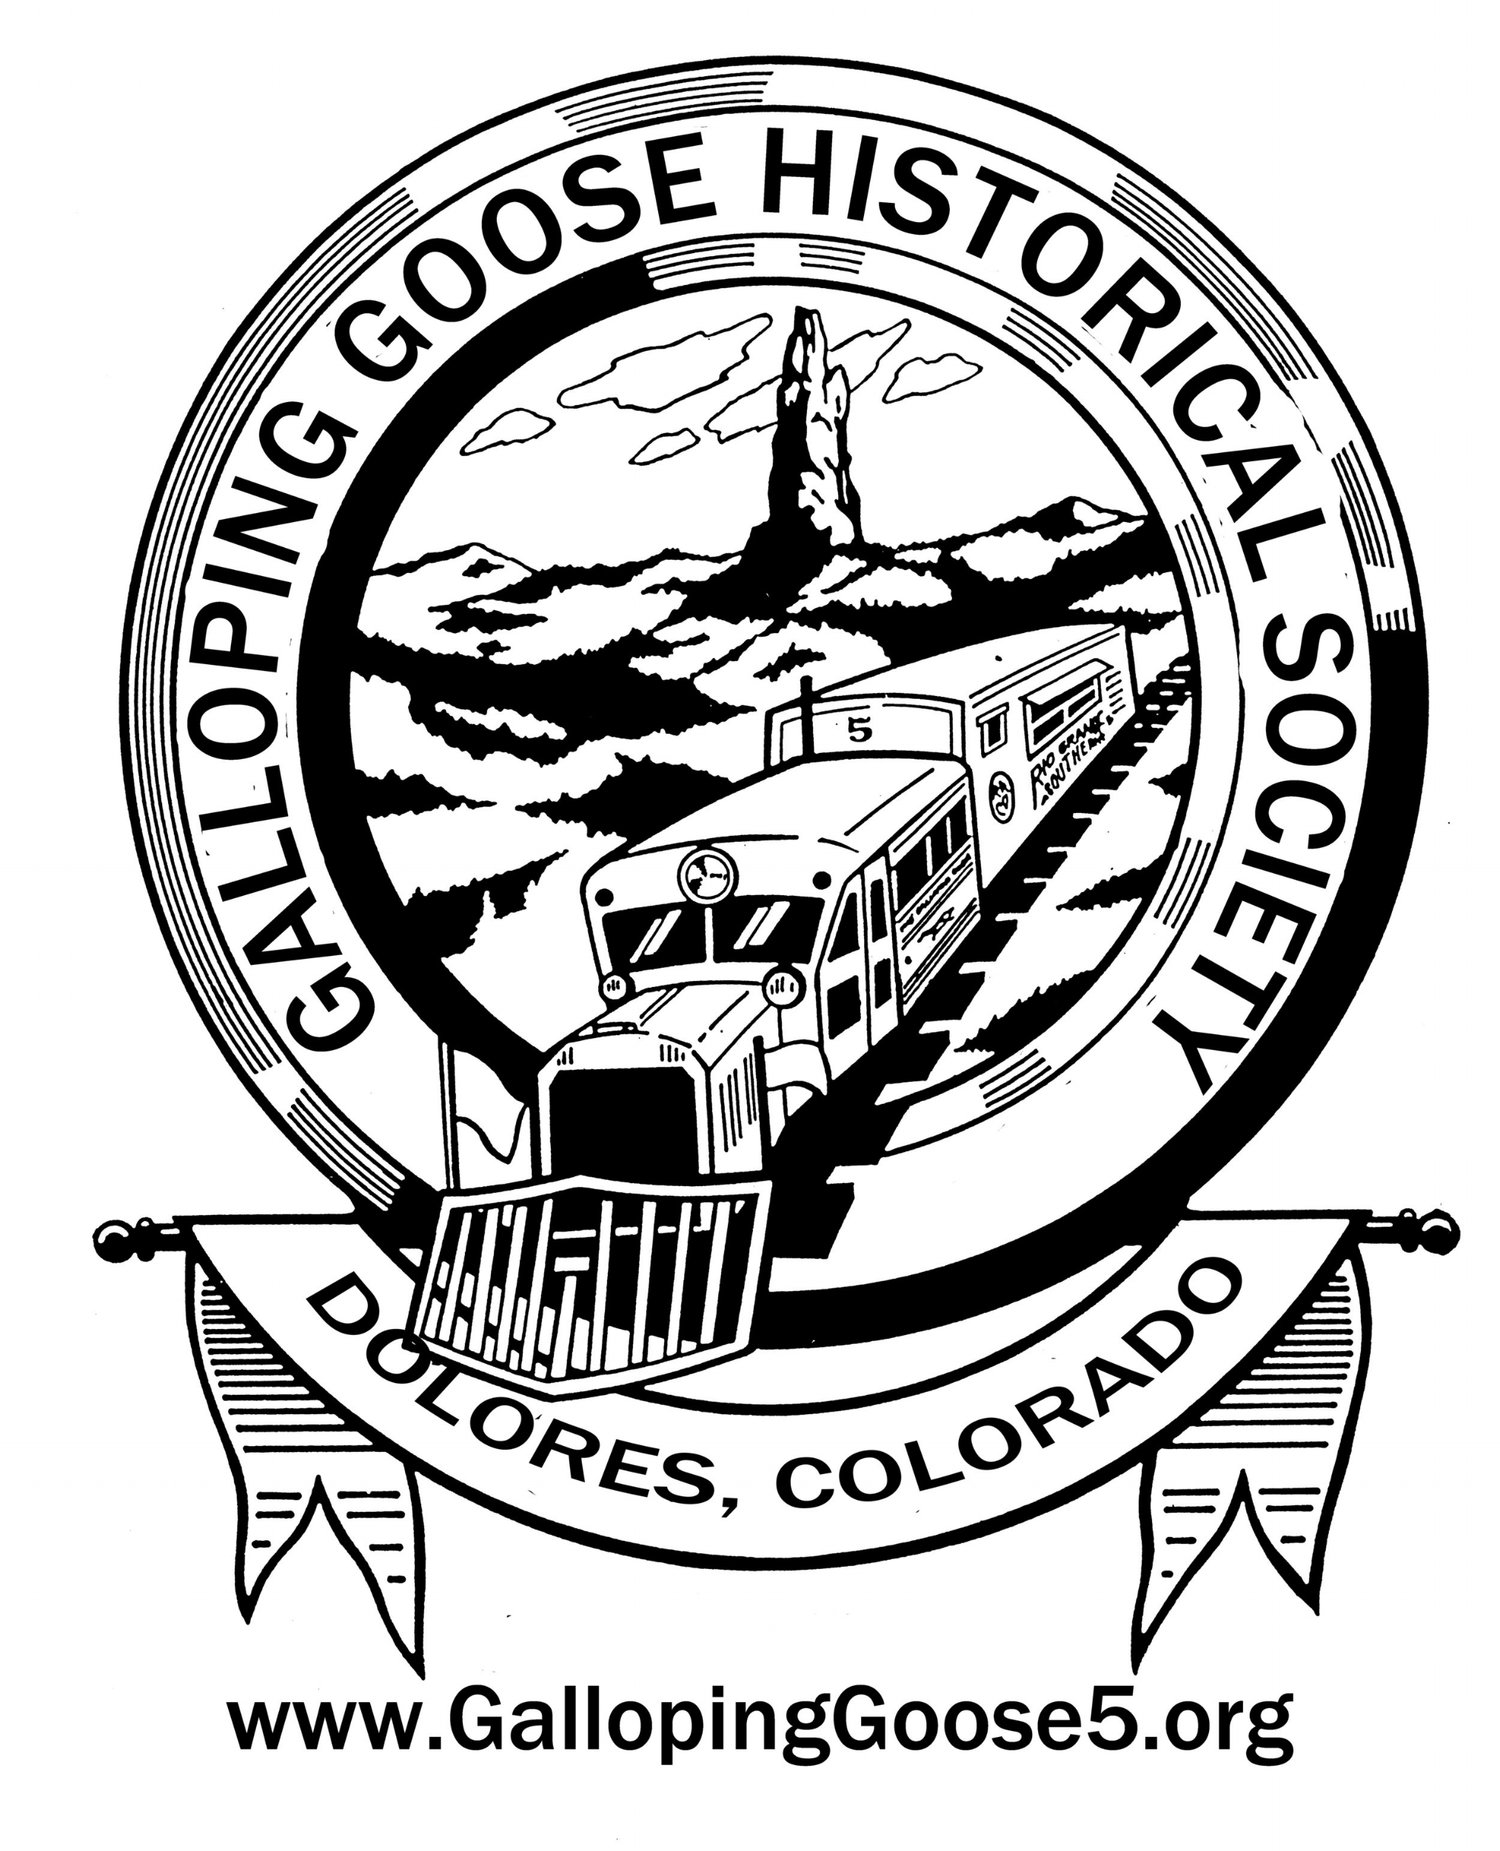 Galloping Goose Historical Society of Dolores, CO